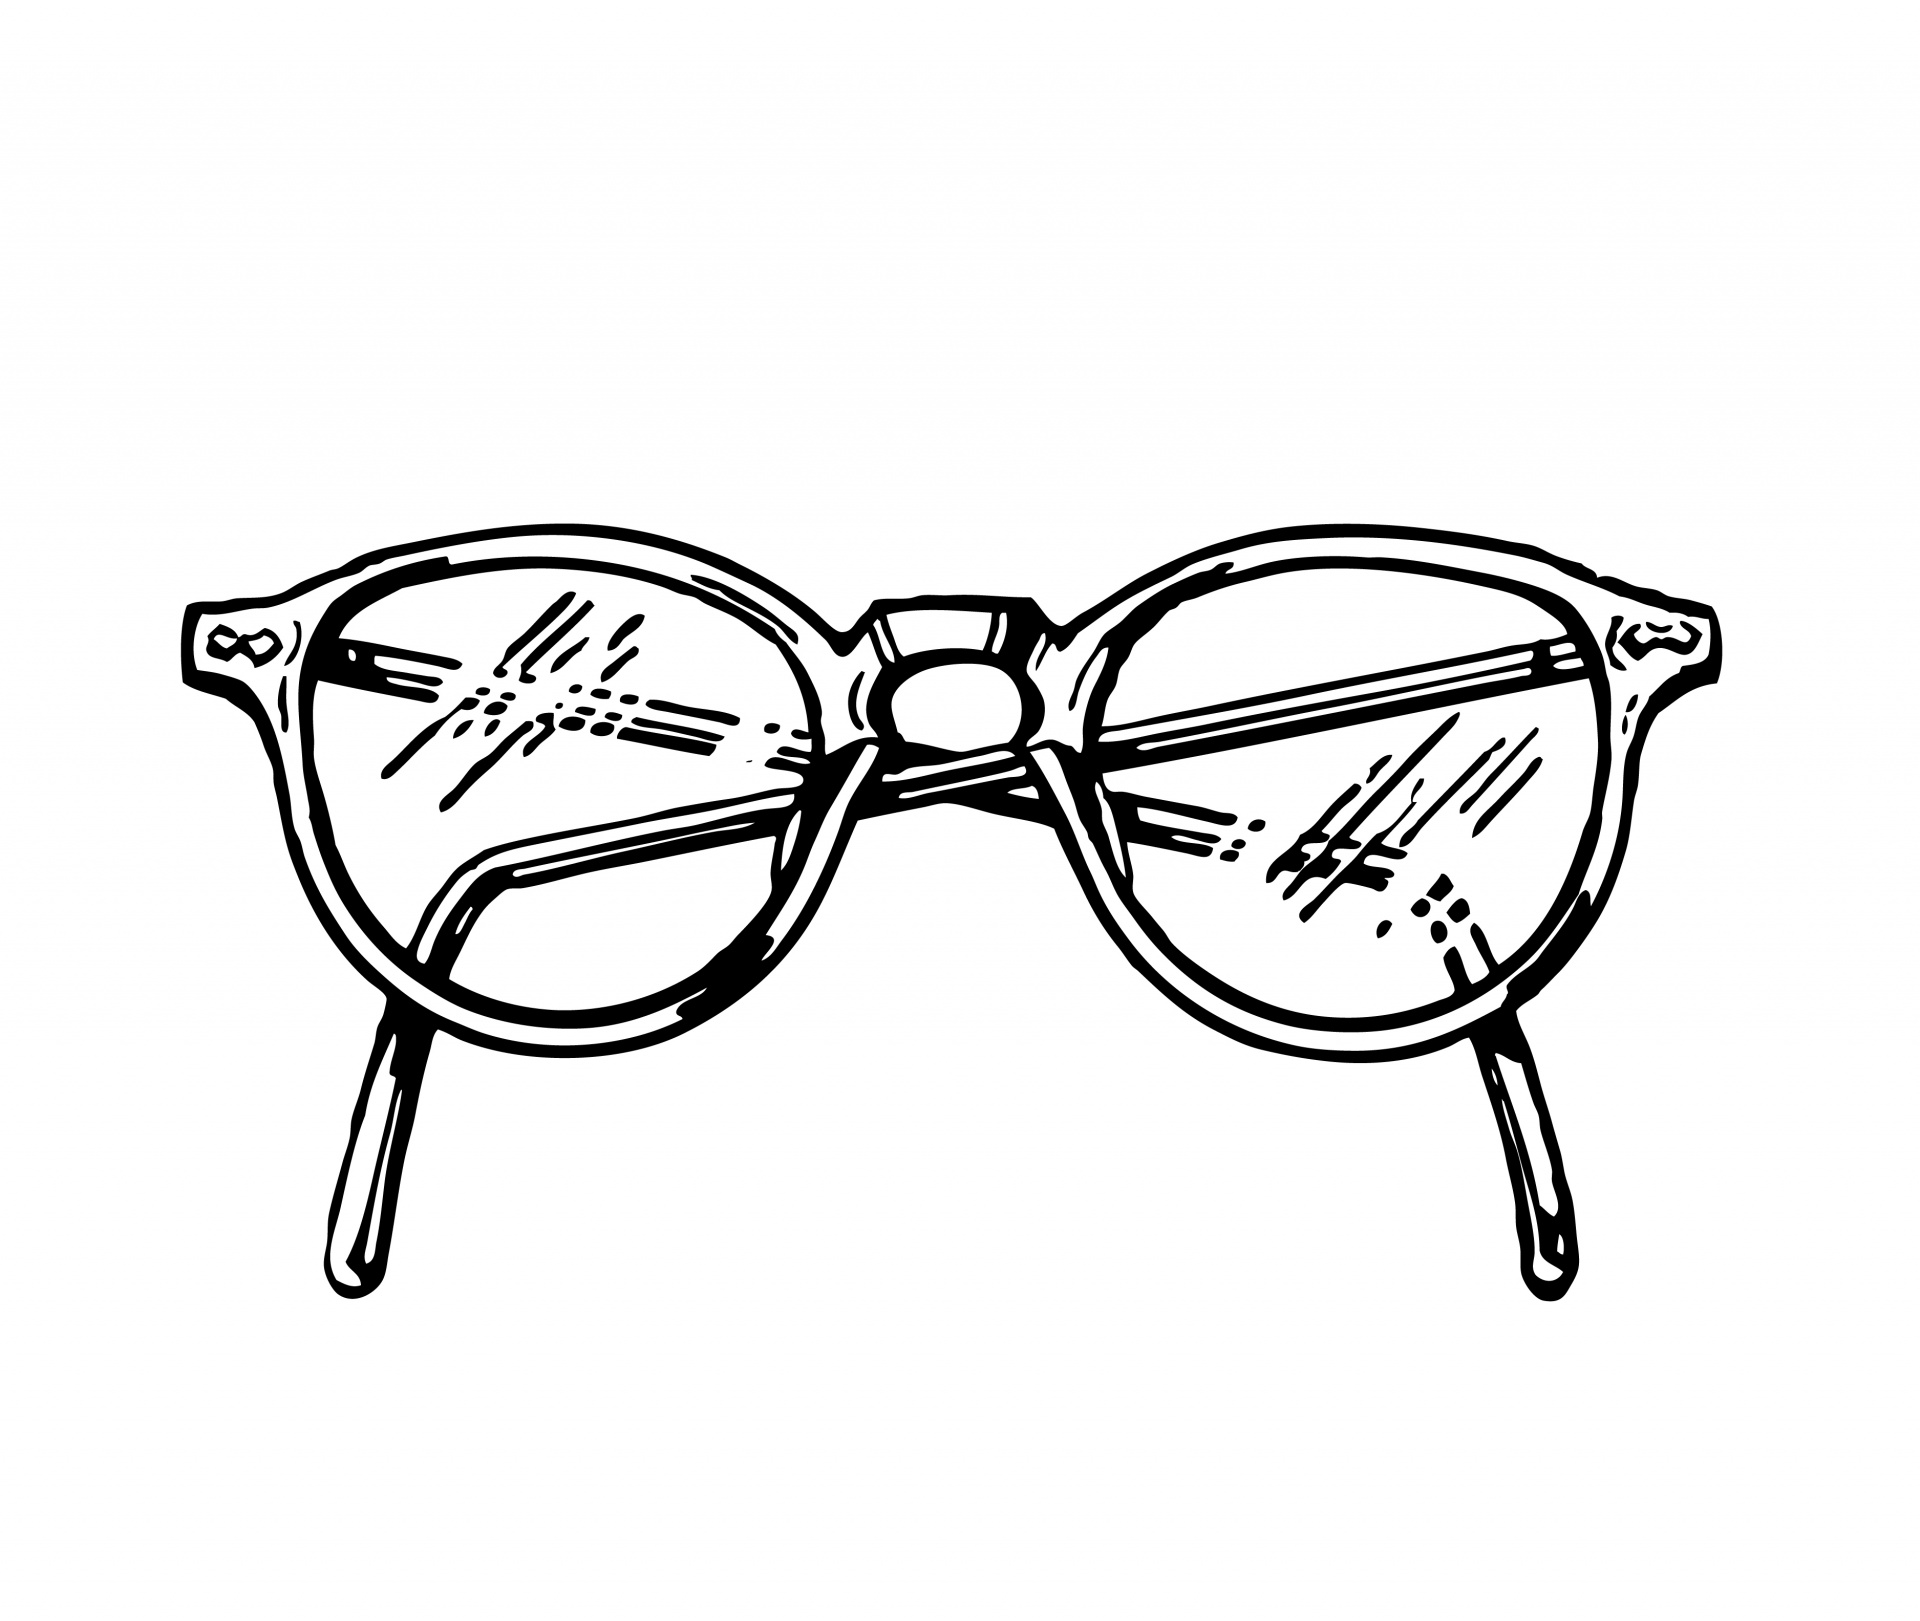 Spectacles clipart vision Illustration Clipart Free Spectacles Stock